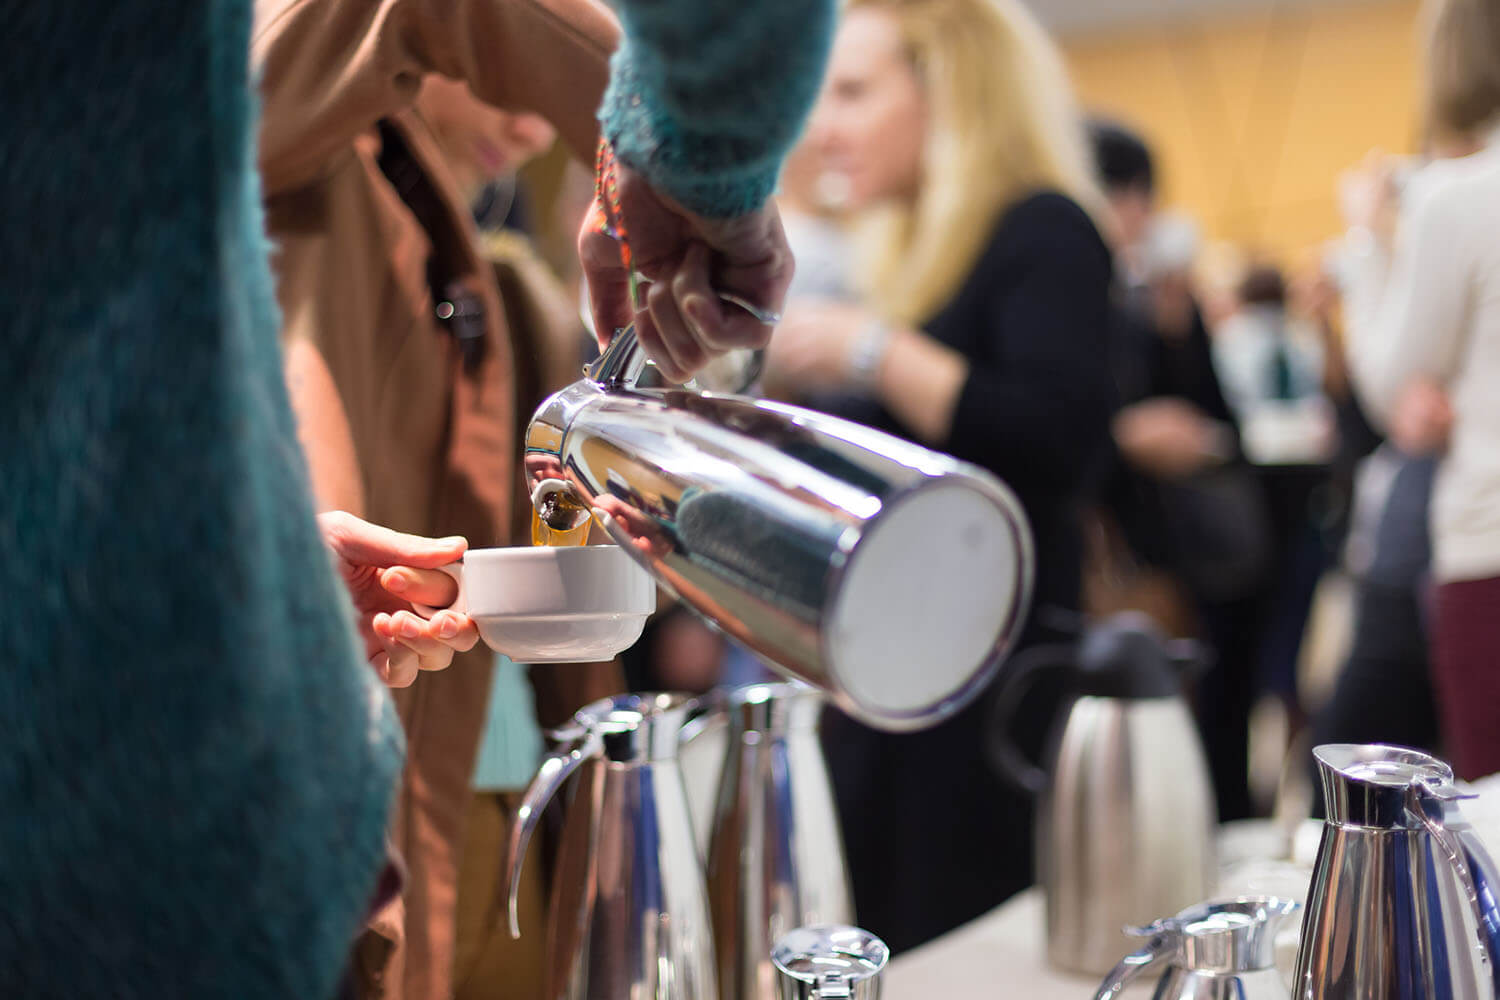 Pouring Coffee at a Zero Waste event